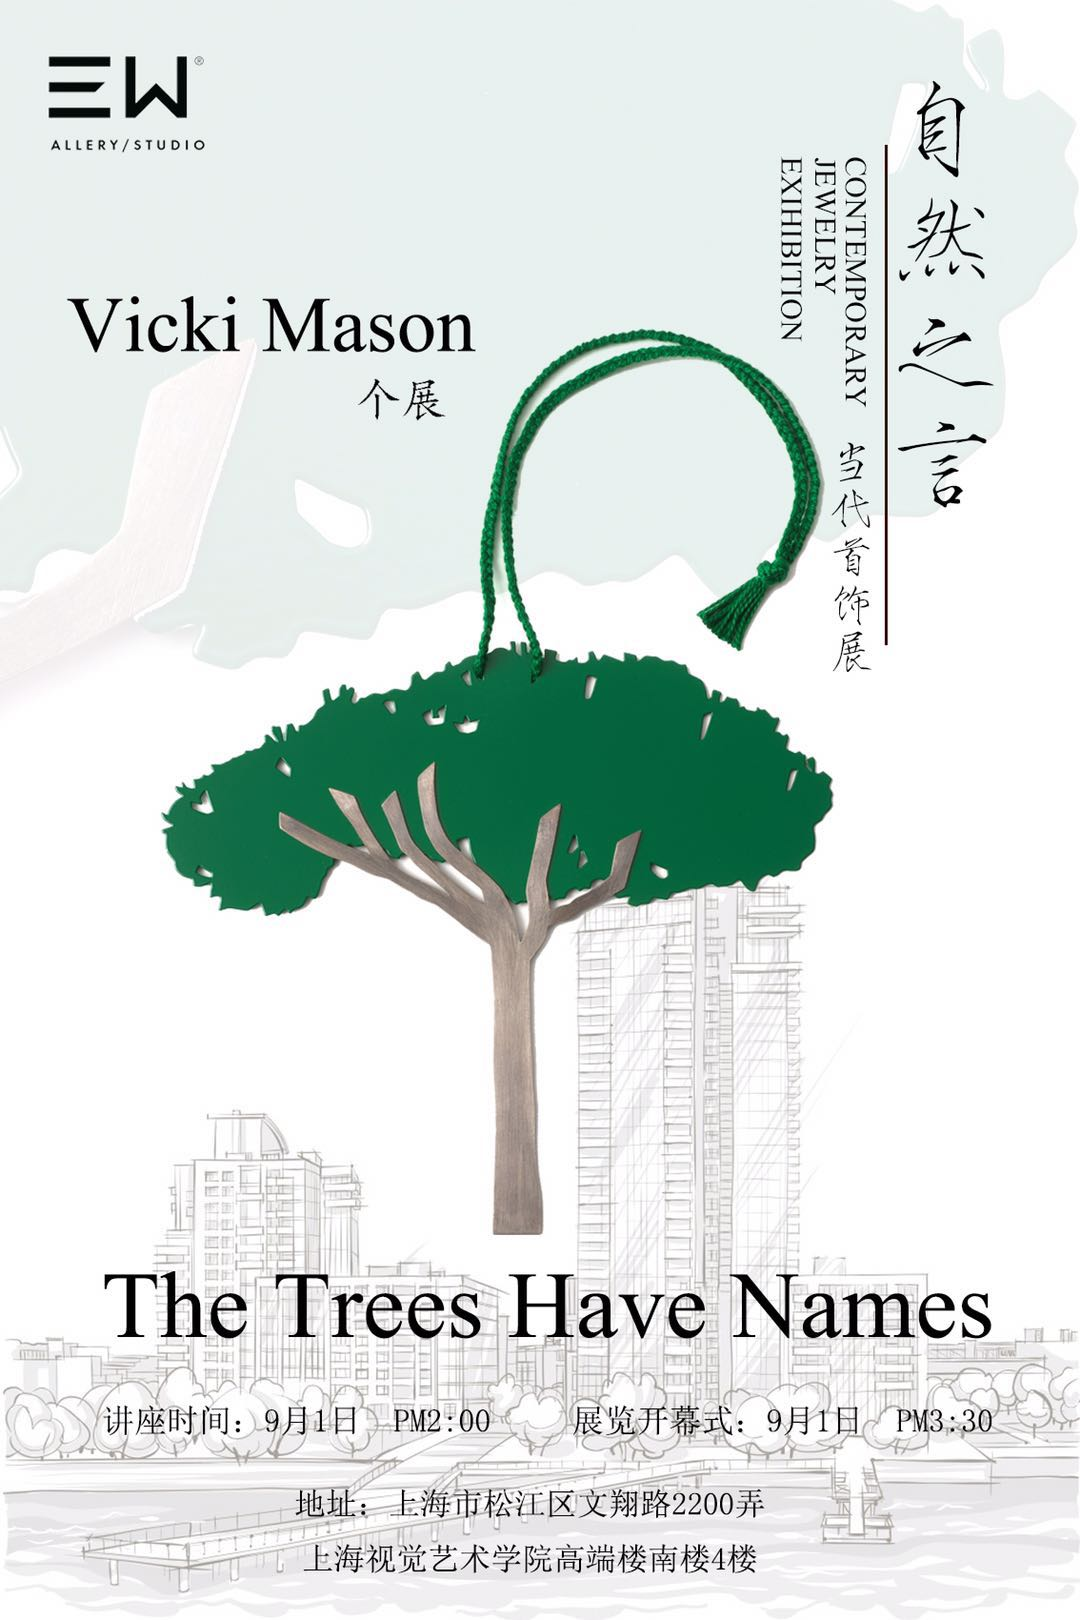 Poster designed by Jia Yang for Vicki Mason's exhibition